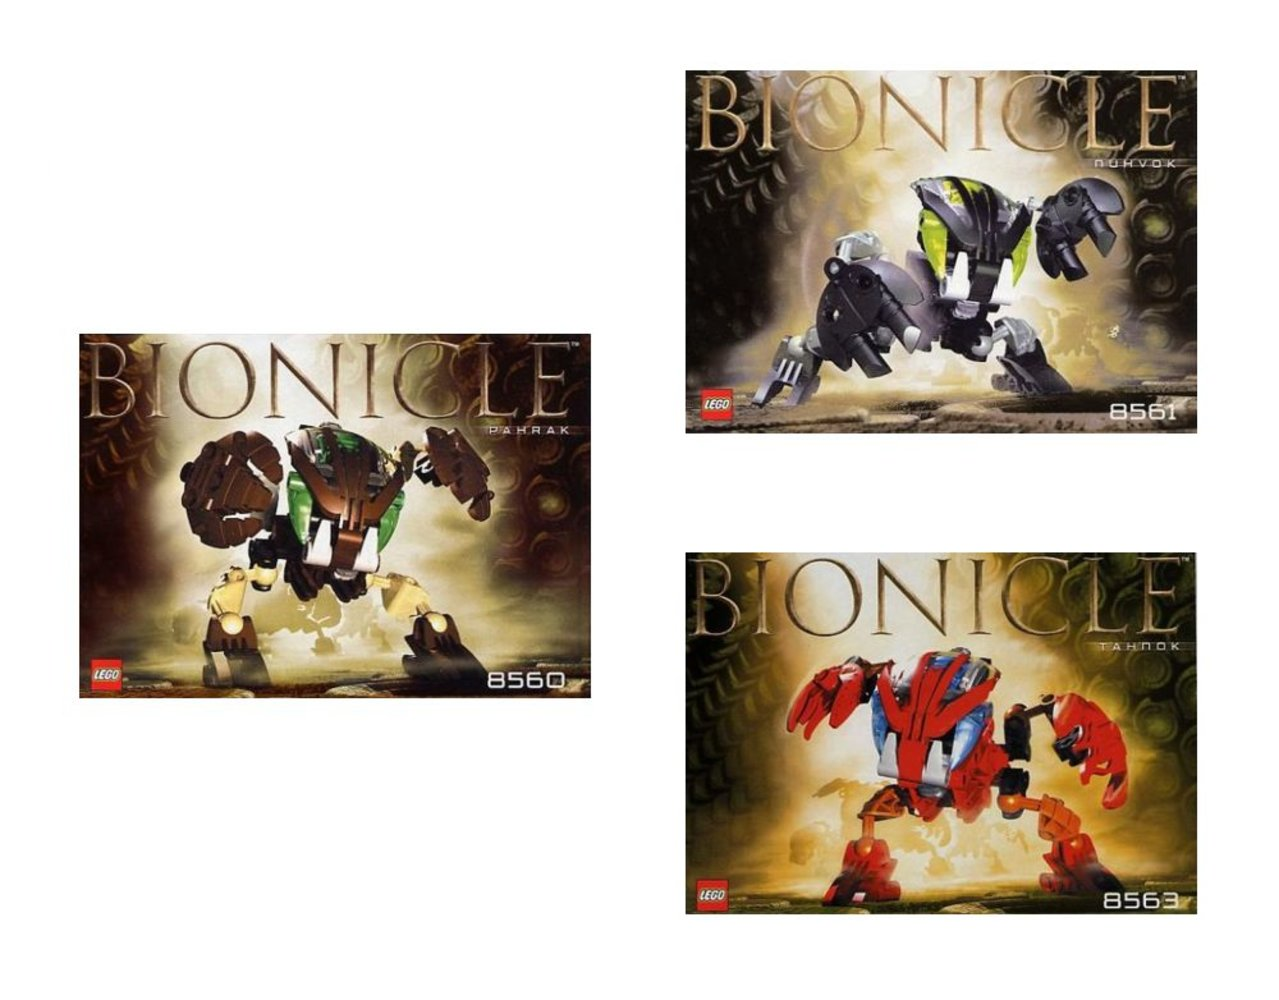 Bohrok Co-Pack (contains 8560 8561 8563)